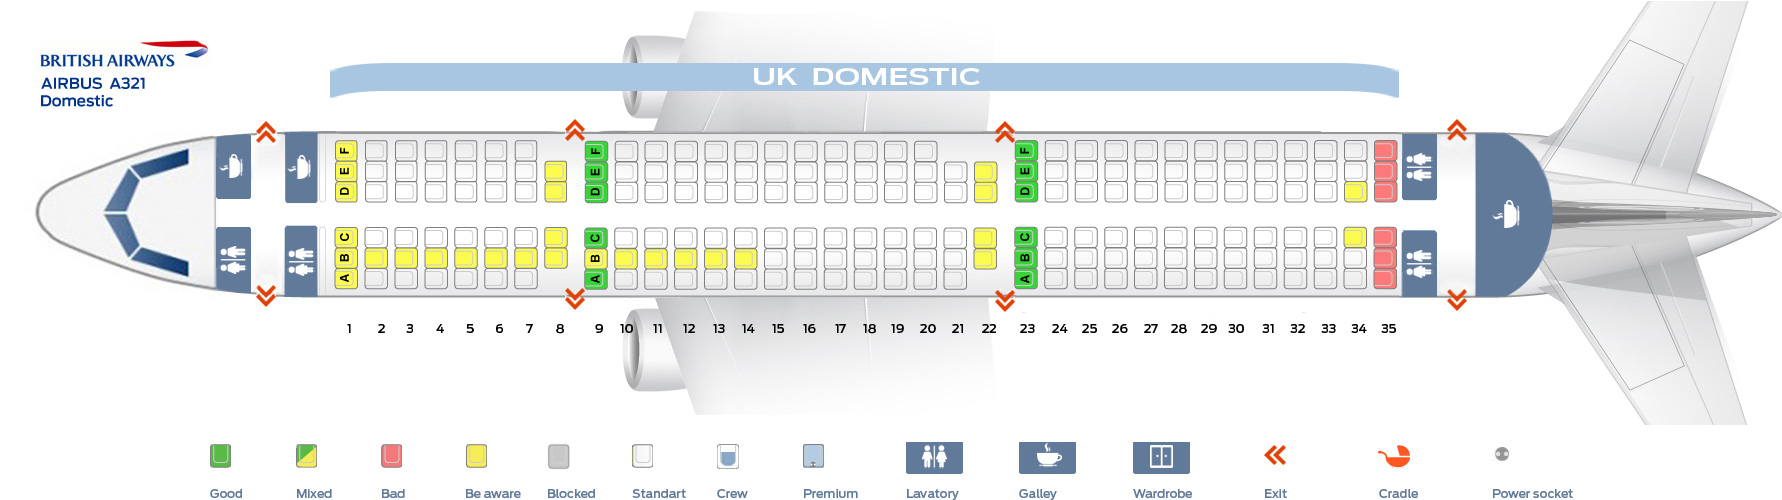 Seat_map_British_Airways_Airbus_A321_Domestic